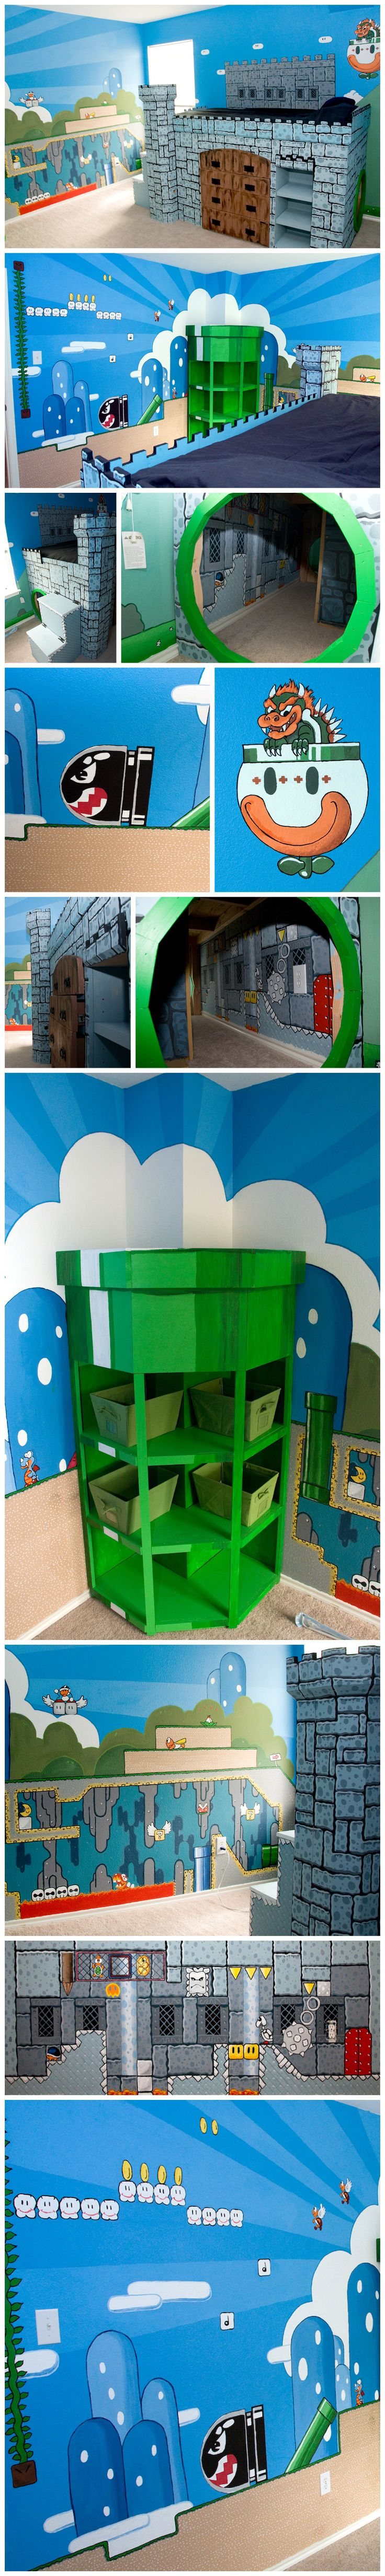 Super Mario World Kid's Bedroom with custom built Castle Bed, complete with pipe tunnel into the Castle Level. Great Video Game Themed Room. #mario #nintendo #mural